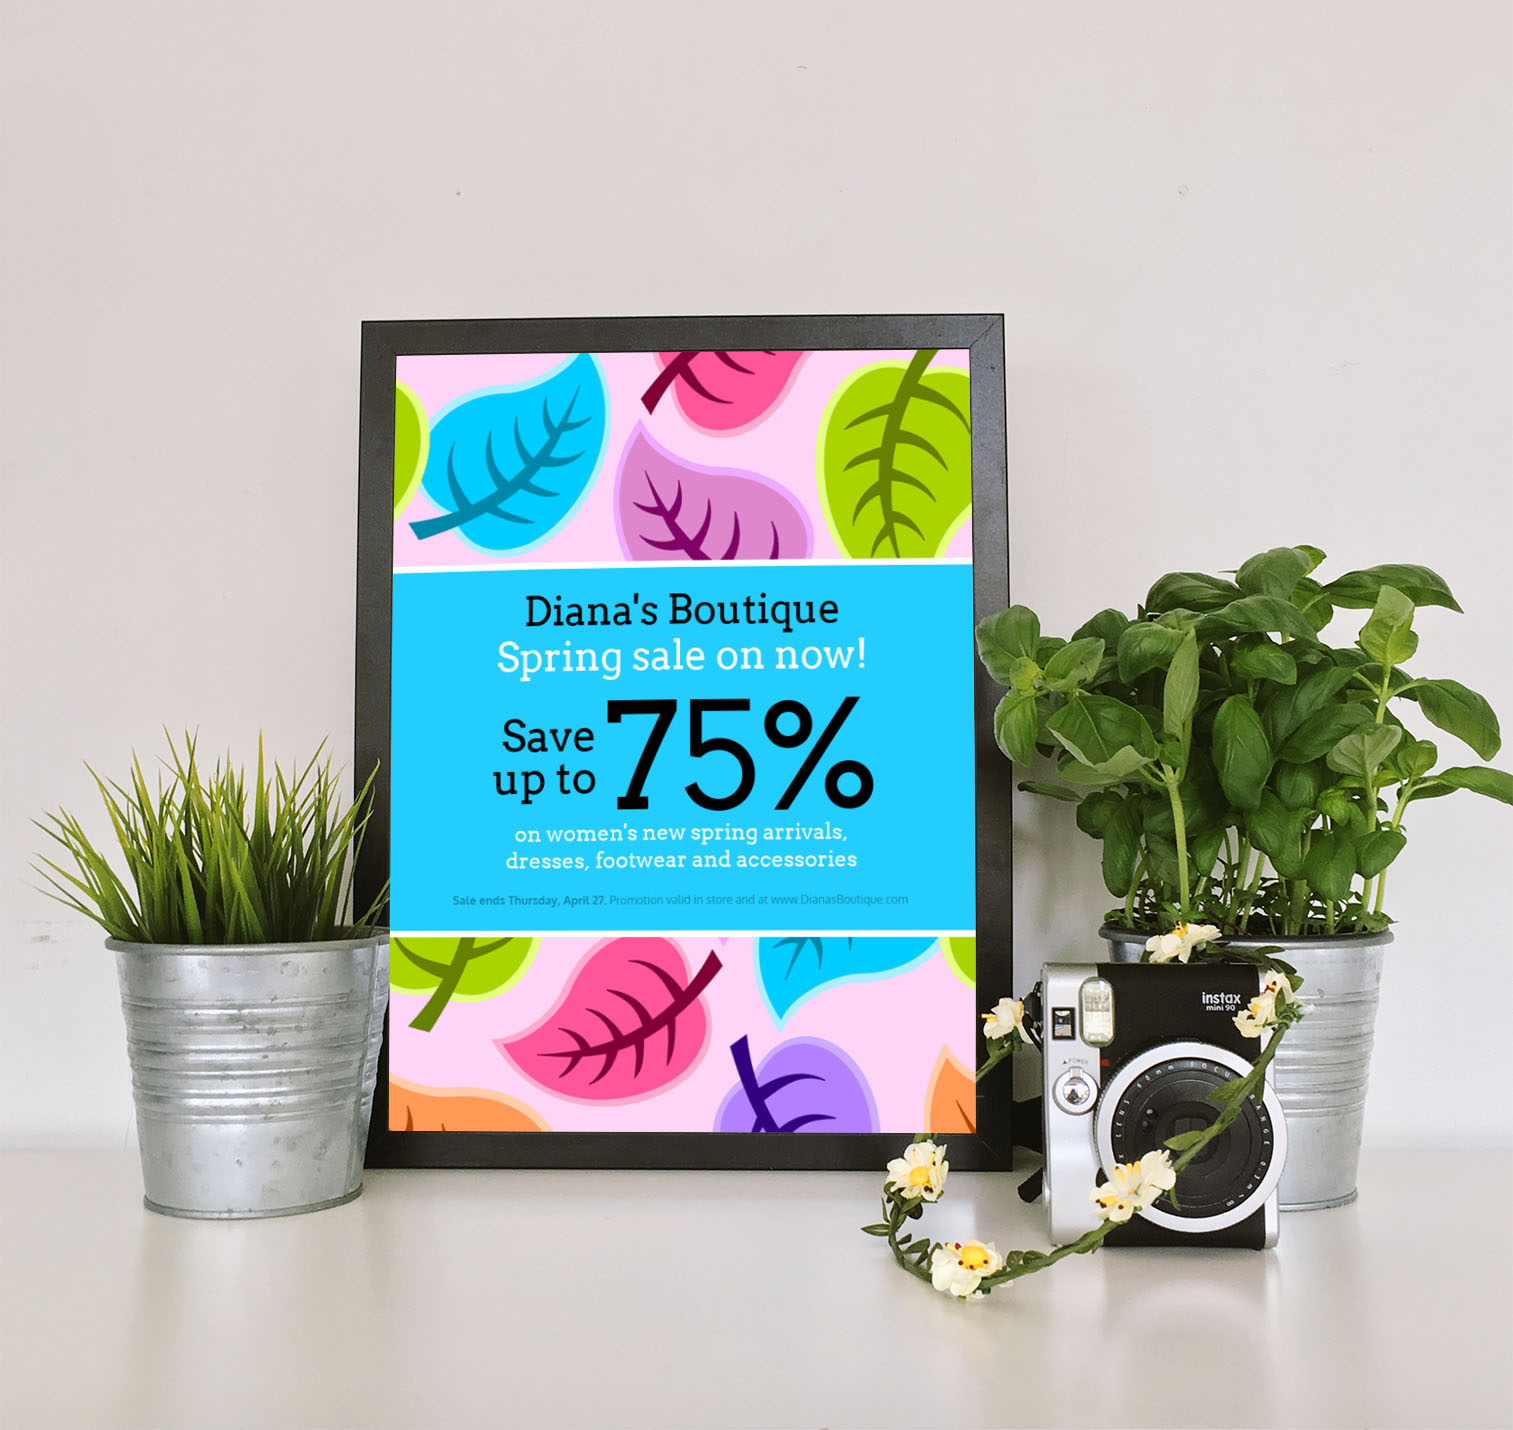 Colorful Spring Clothing Sales Flyer Idea